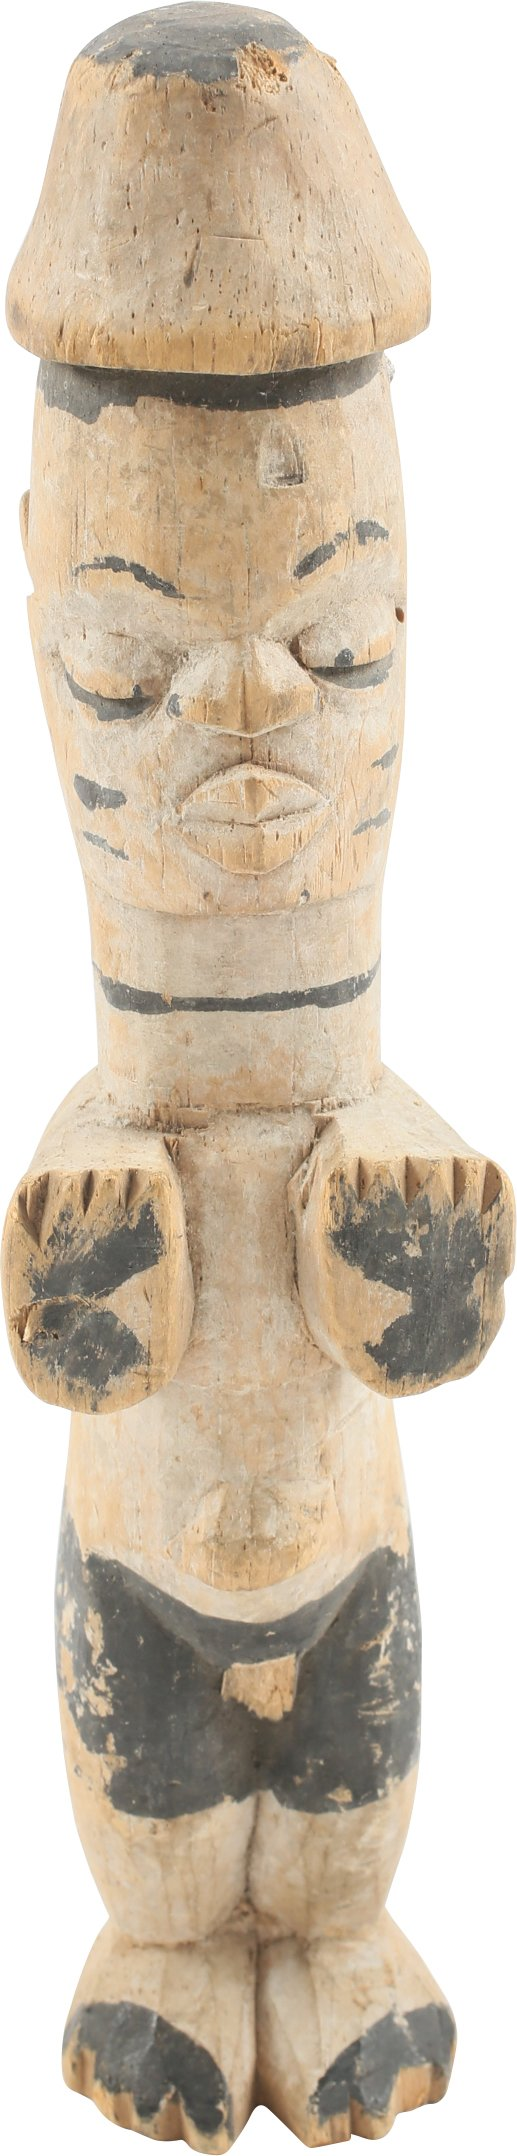 IBIBIO MALE FIGURE - Fagan Arms